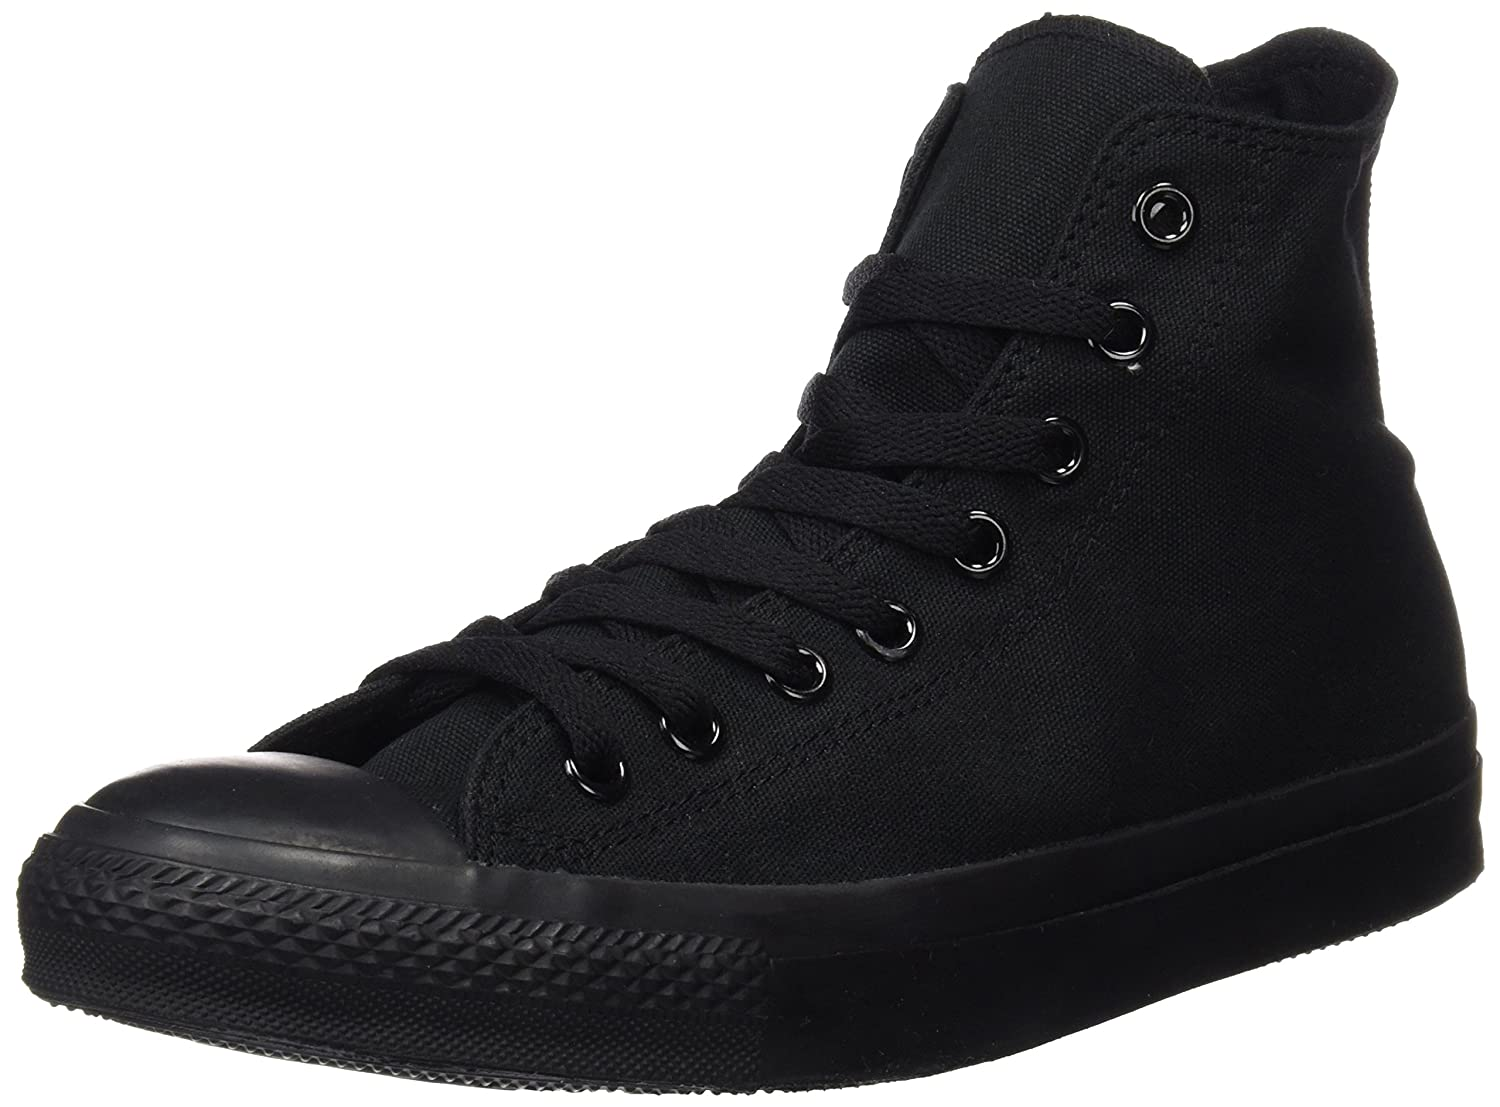 Converse Ctas Core Black Hi, Monochrome Baskets B01AUQVW7I mode mixte adulte Black Monochrome b1d5df9 - fast-weightloss-diet.space